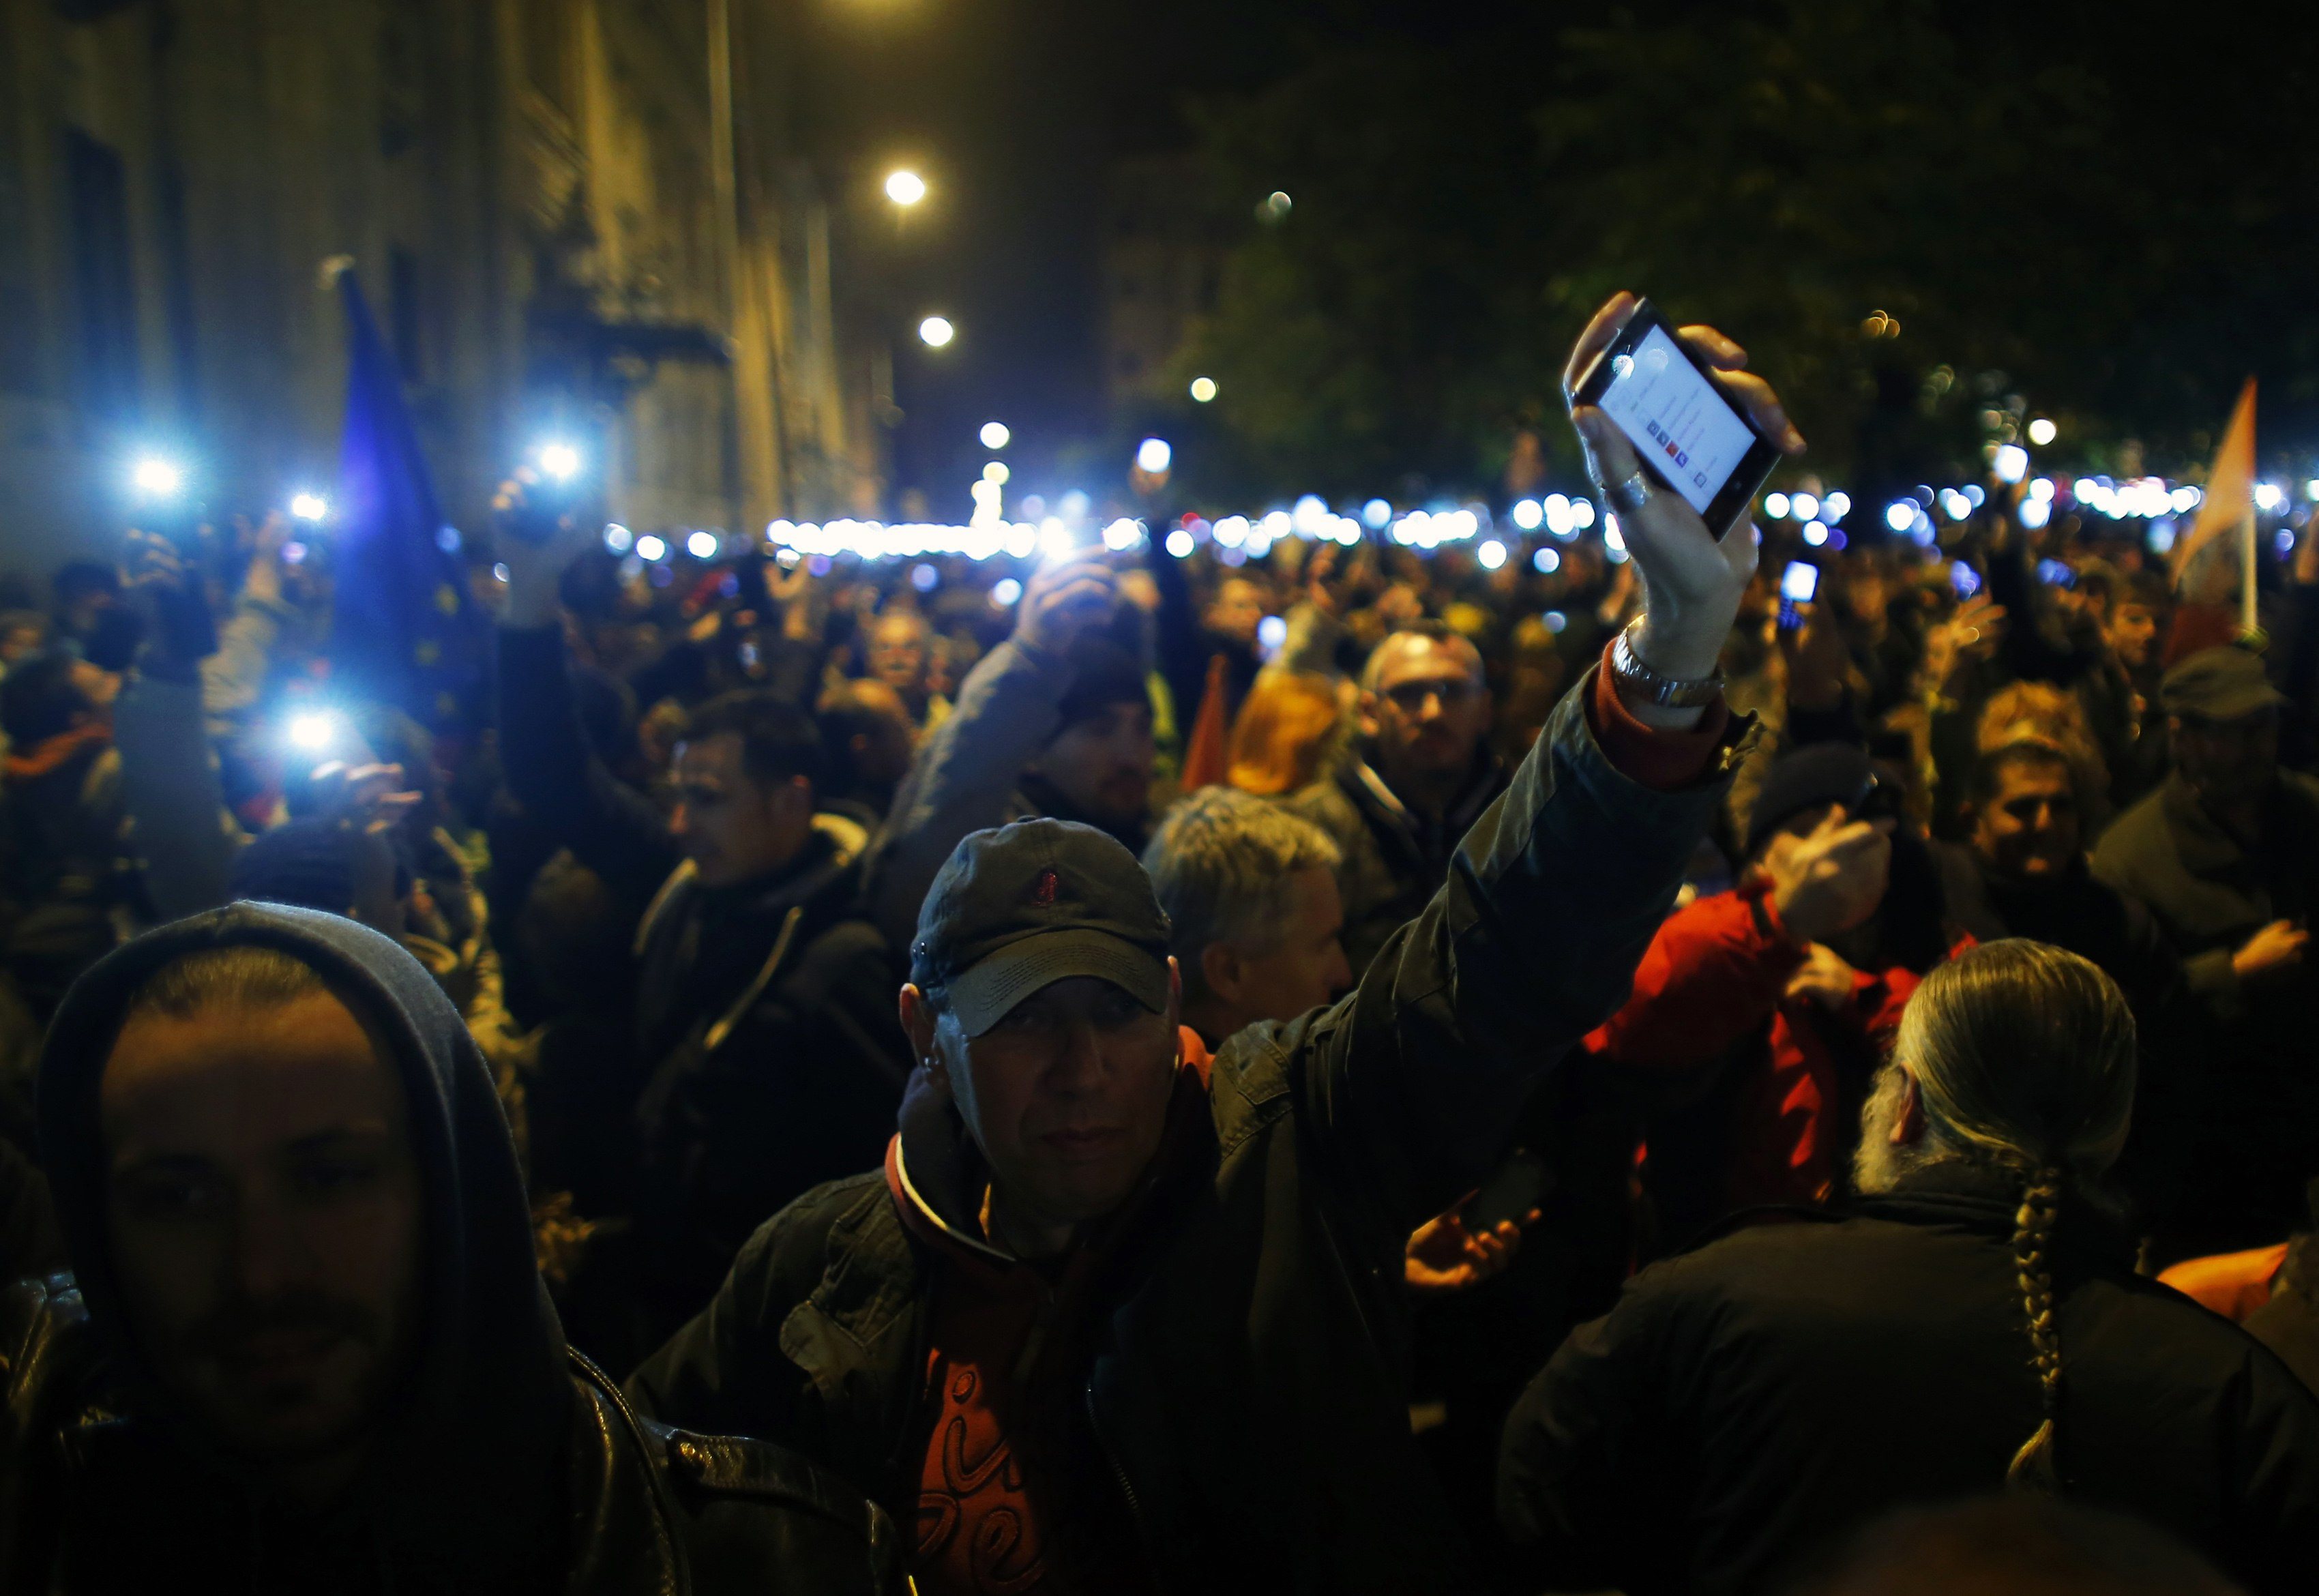 Around 100,000 Hungarians rally for democracy as internet tax hits nerve